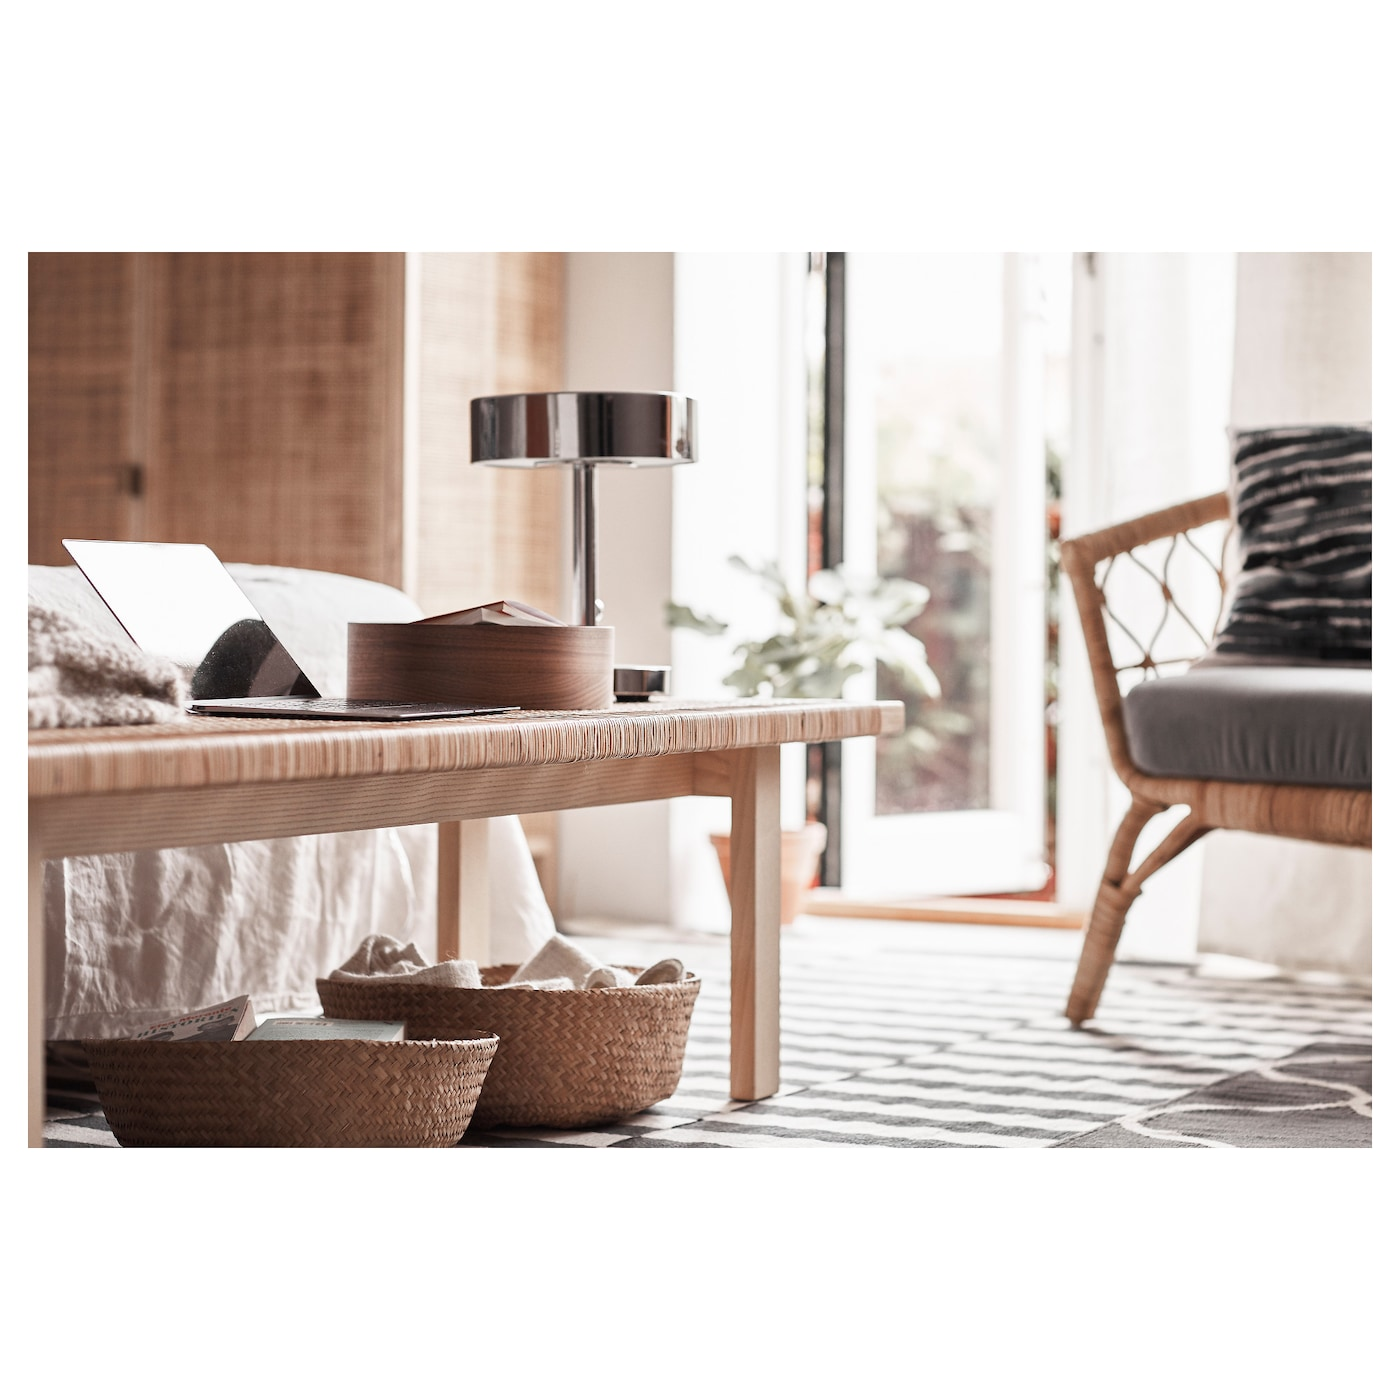 stockholm 2017 coffee table rattan ash 100x40 cm ikea. Black Bedroom Furniture Sets. Home Design Ideas